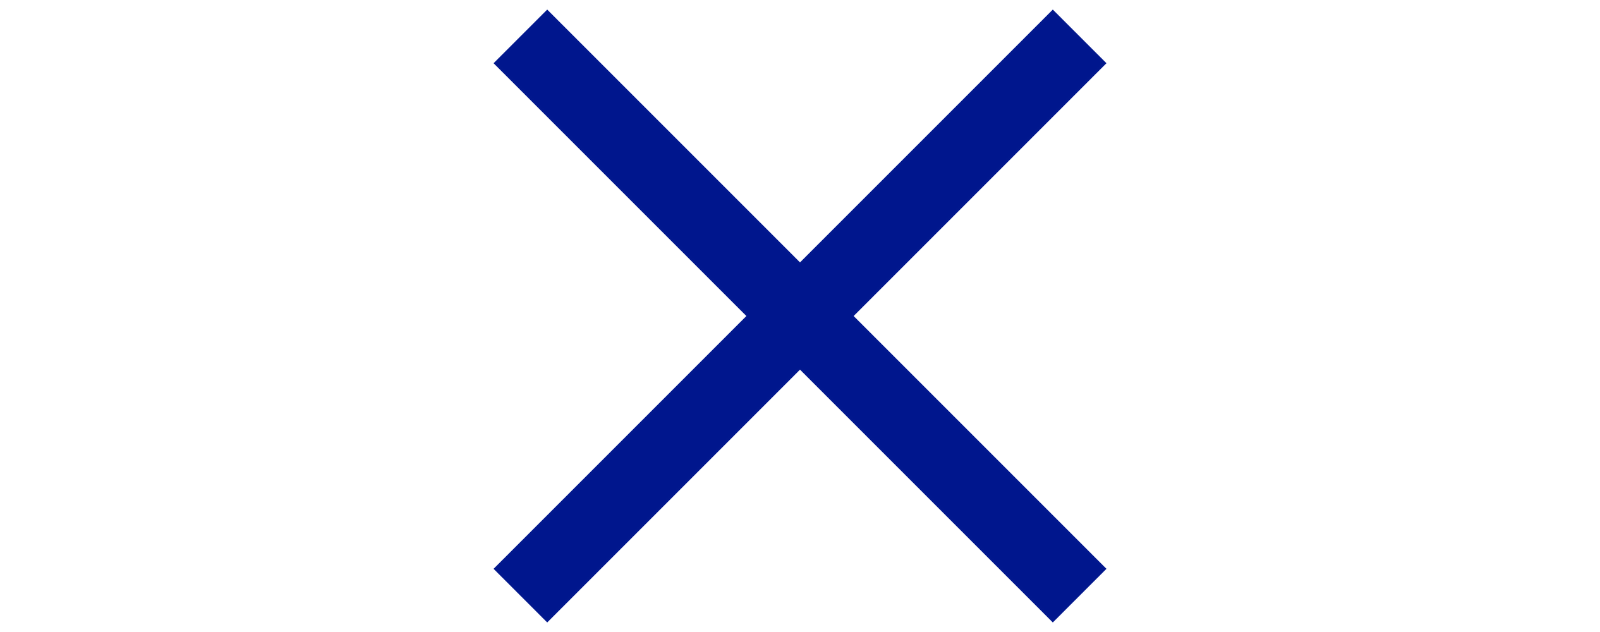 Cross of Saint Andrew